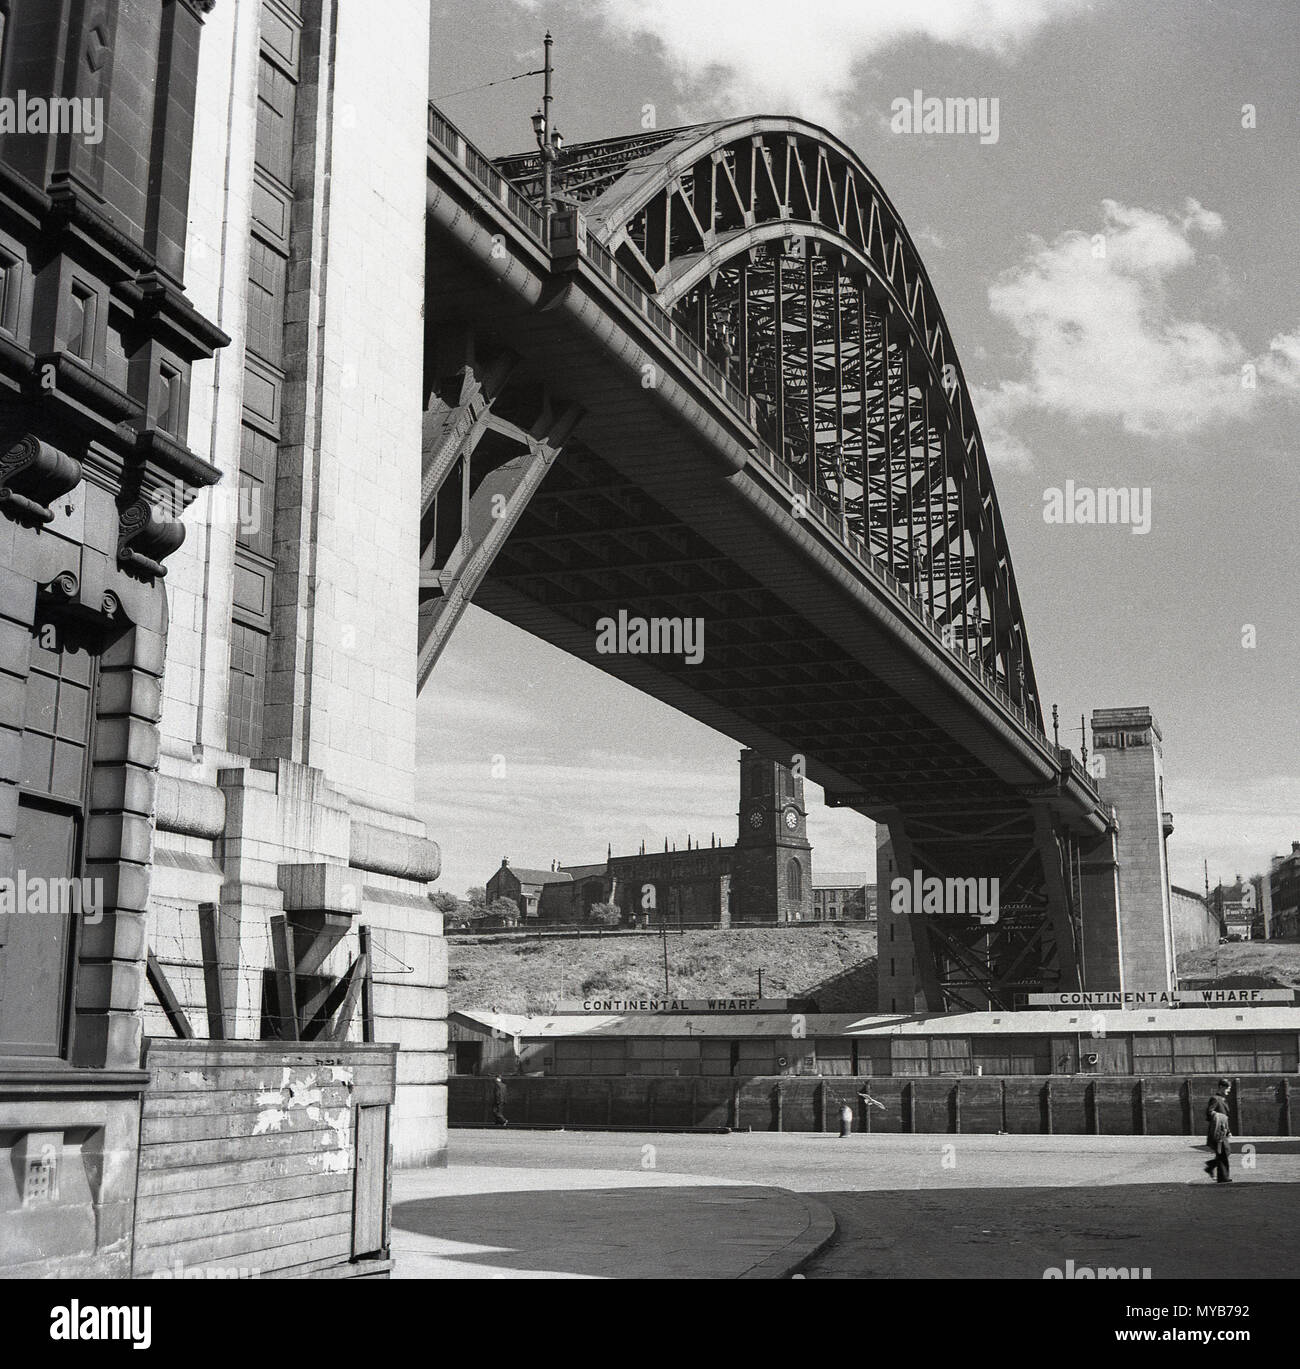 1950s, historical picture, a view from below, from the quayside of the Tyne Bridge, a gthrough arch bridge over the River Tyne, linking the city of Newcastle to the town of Gateshead, England, UK. it was the biggest single-span bridge in the UK when officially opened by King George V in October 1928. - Stock Image